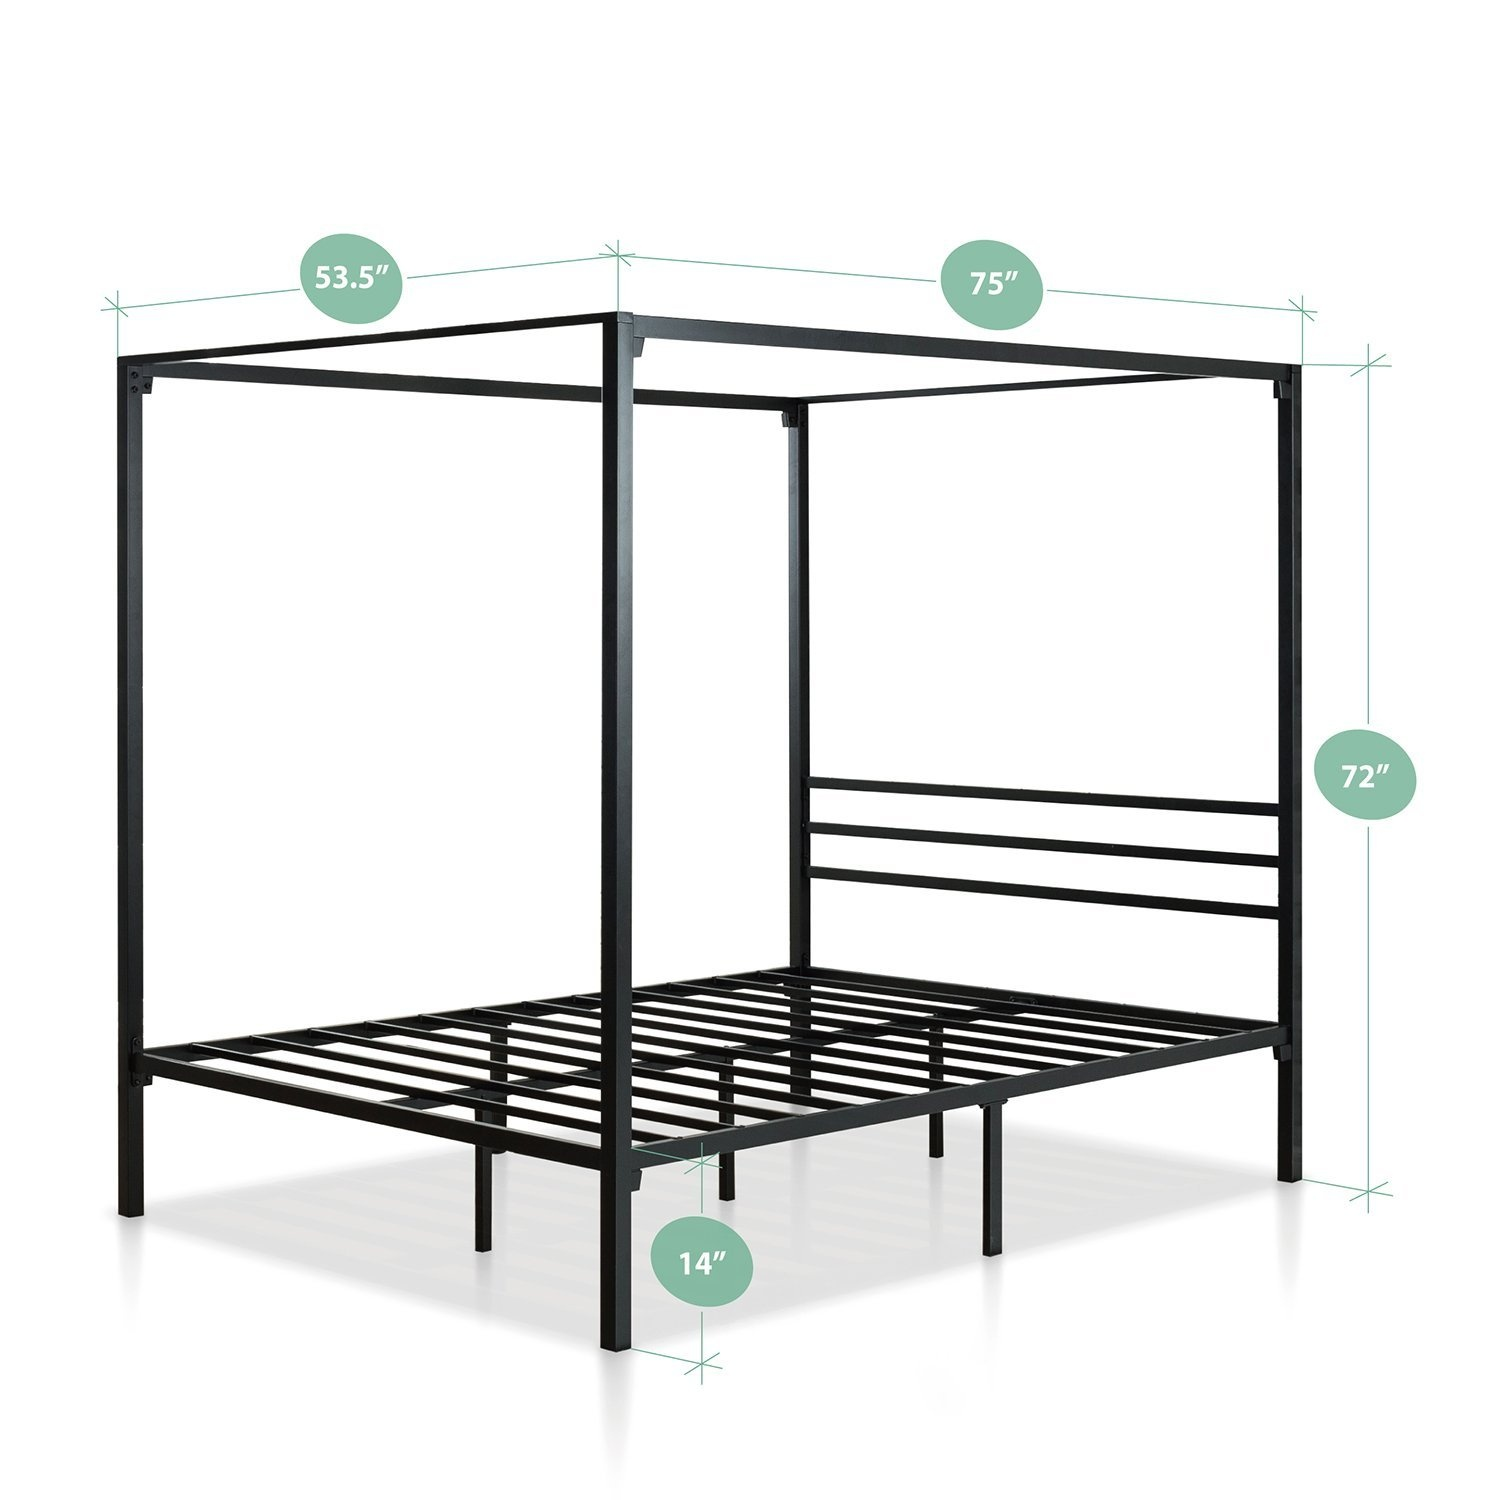 Zinus Metal Framed Canopy Four Poster Platform Bed Frame Strong Steel Mattress Support No Box Spring Needed Queen By Zinus Shop Online For Homeware In New Zealand